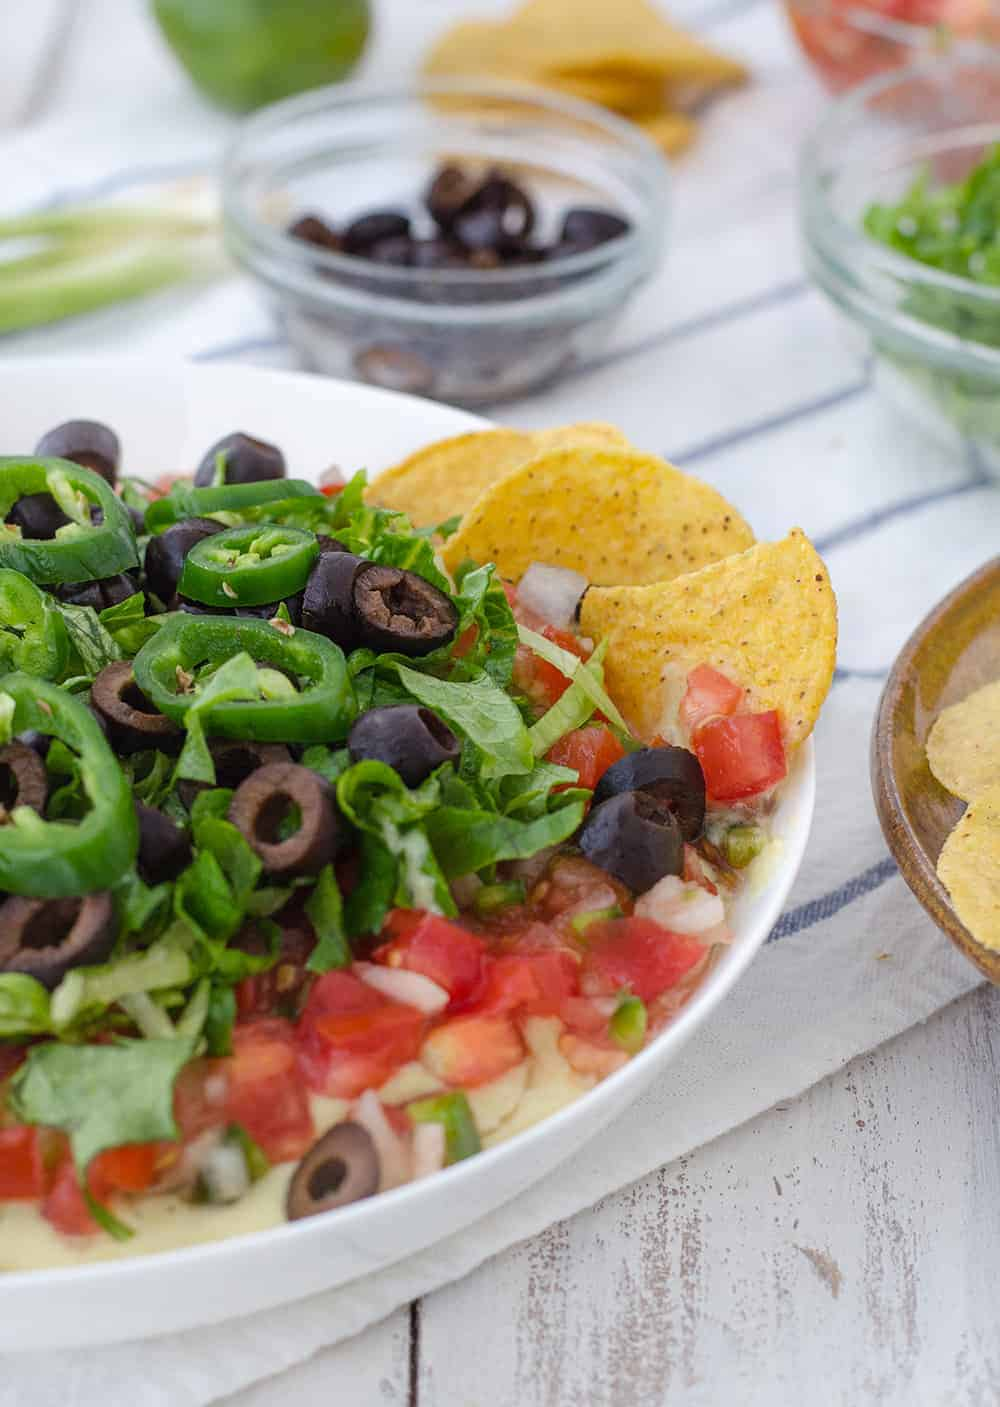 Vegan Mexican 7 Layer Dip! Refried black beans,quick vegan cheese sauce, guacamole, homemade pico de gallo, shredded lettuce, olives, and peppers! A must make for a healthy superbowl! | www.delishknowledge.com